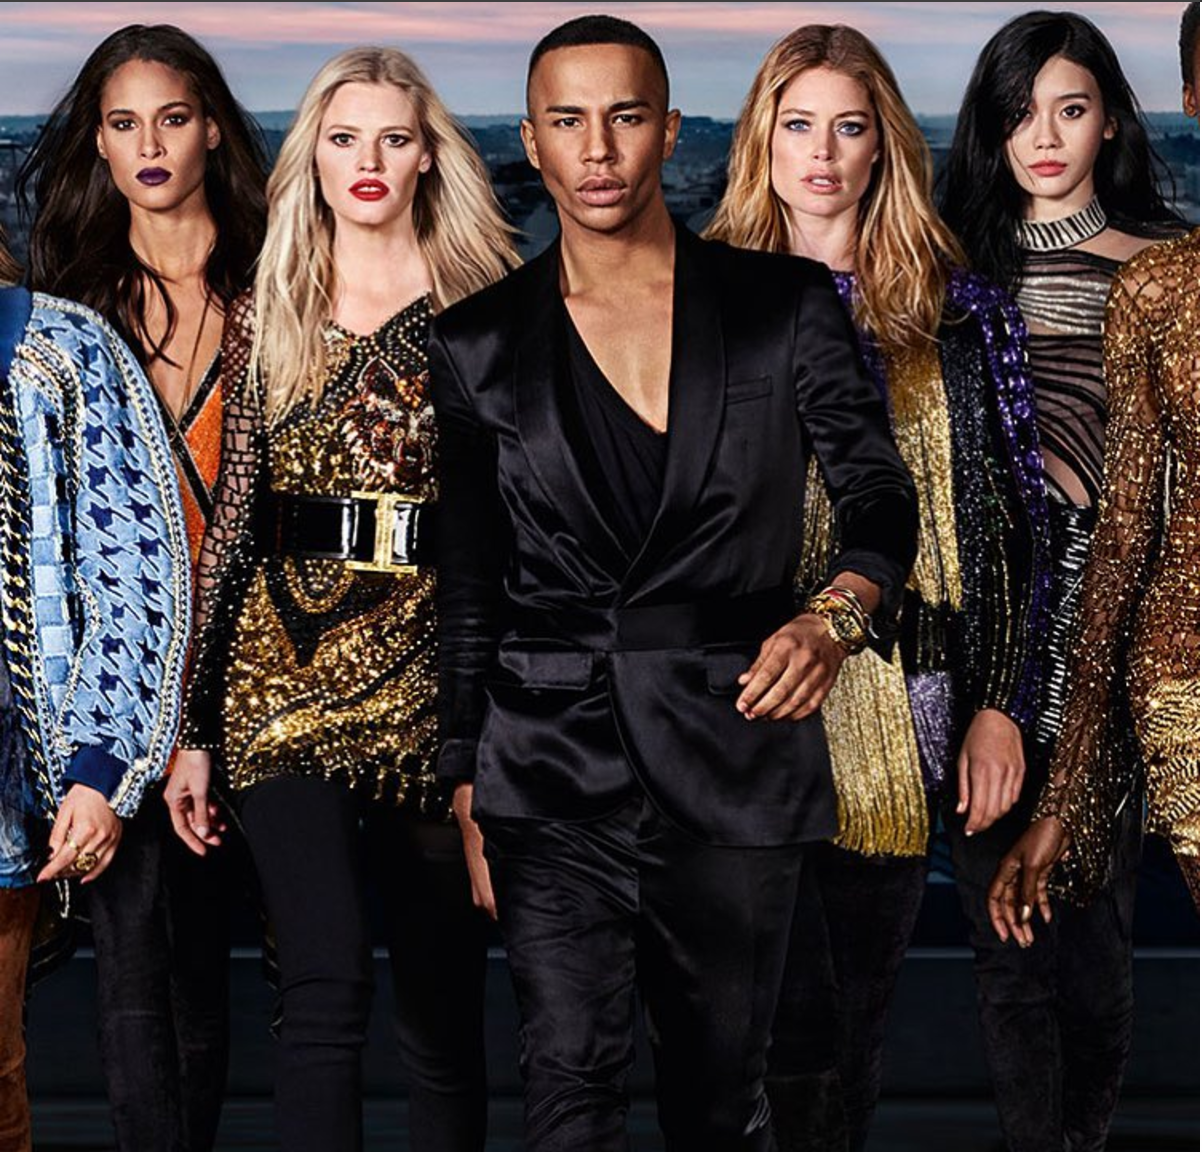 f3a0695dadd BALMAIN AND L'ORÉAL DIVE INTO DIVERSITY FOR NEW COLLABORATION